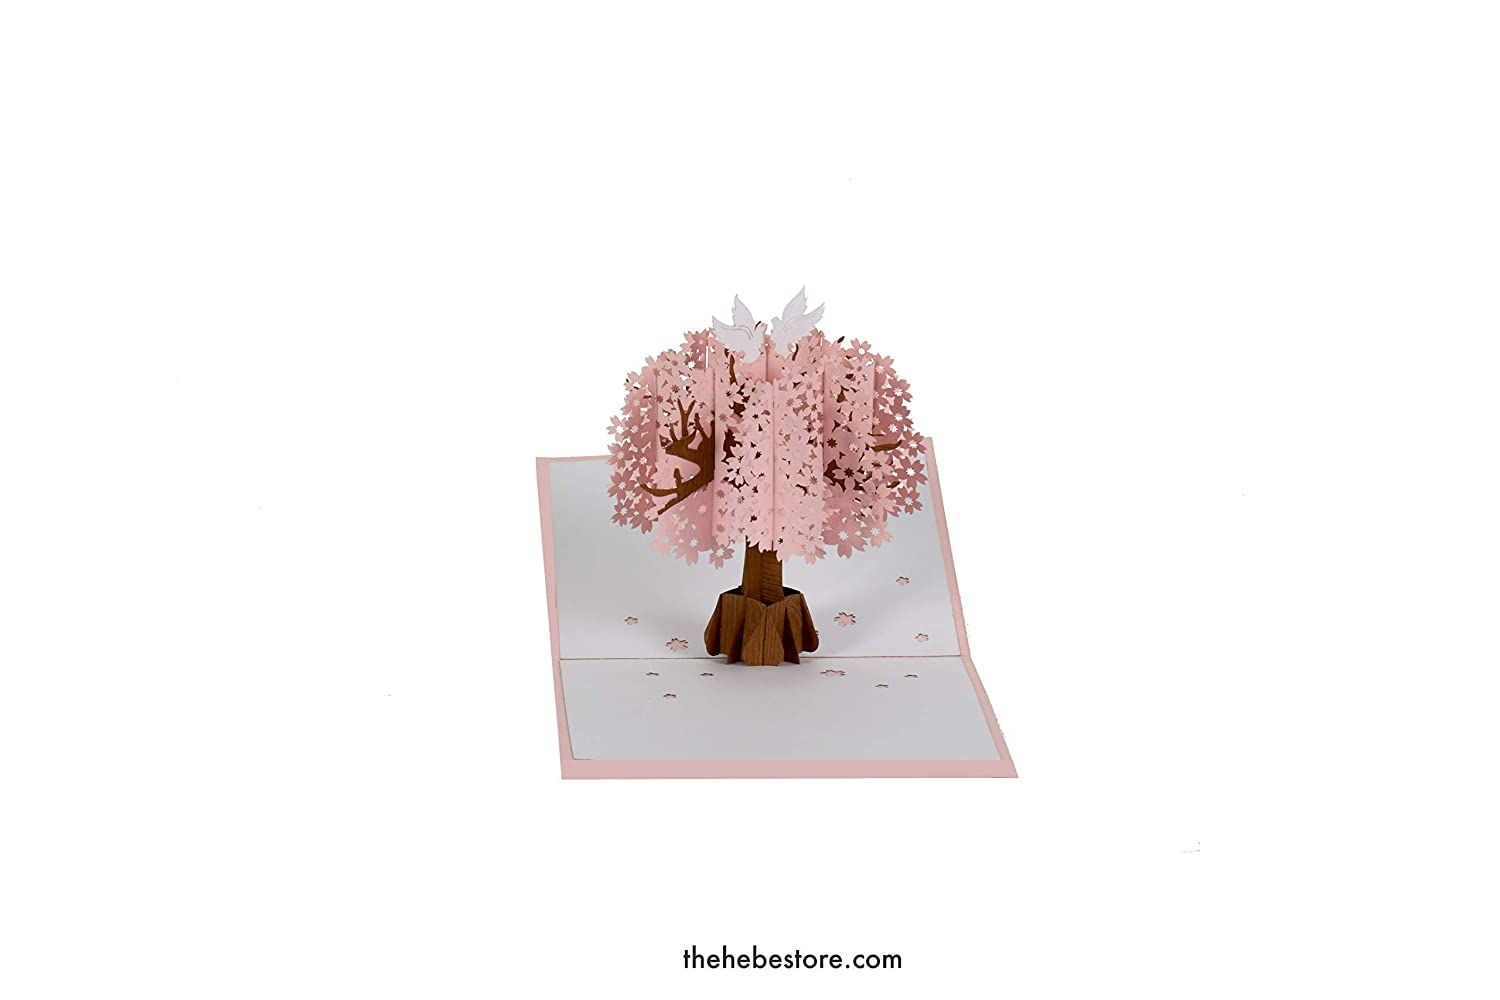 All Occasion Flowers Anniversary Handmade Cherry Blossom Pop Up Cards Mothers Day Cards By The Hebe Store Mommy Card for Wife Mother Birthday Spring Card